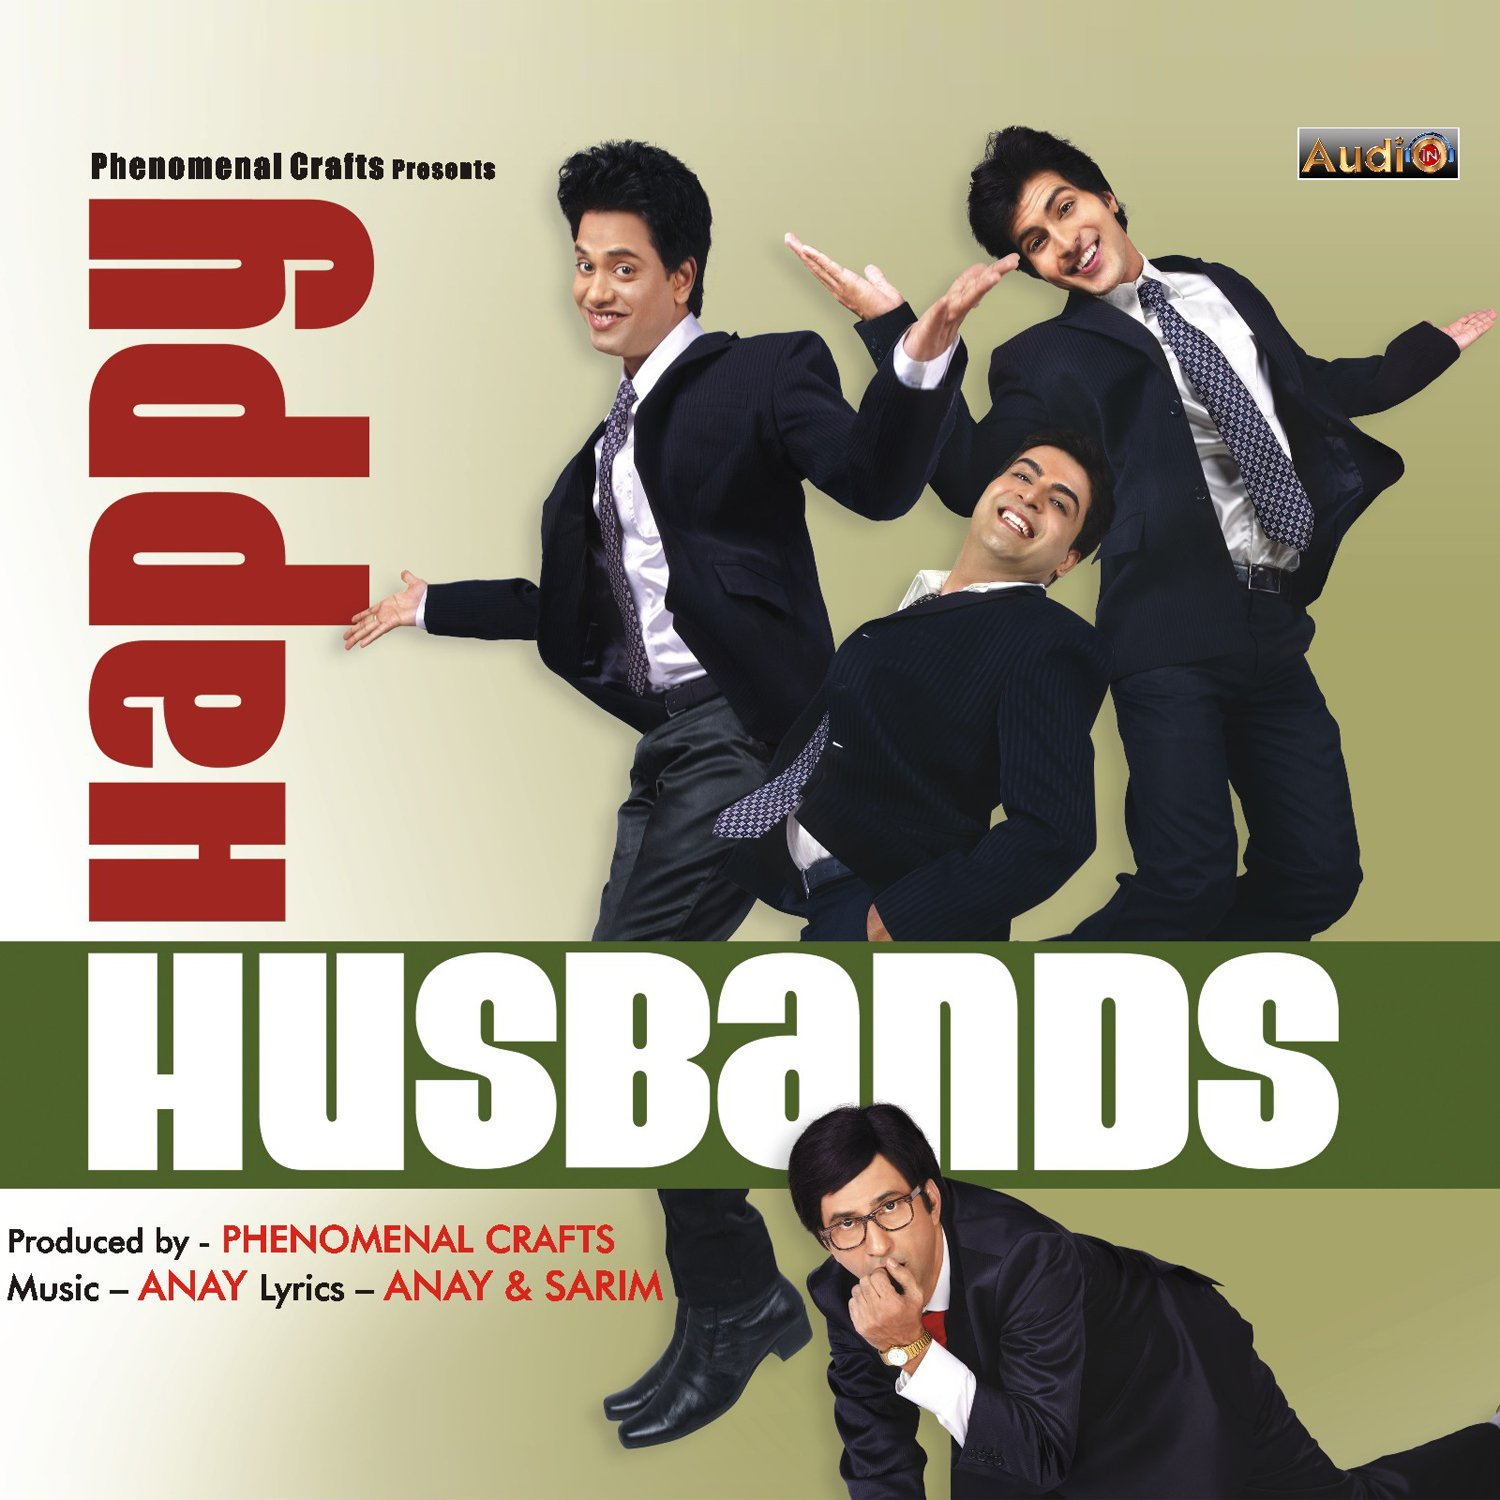 Anay Ishq Victor Sunidhi Chauhan Naresh Iyer Javed Ali Hamza Happy Husbands 2011 Hindi Music Bollywood Songs Film Soundtrack Indian Music Cd Amazon Com Music Happy hardy and heer movie song. anay ishq victor sunidhi chauhan